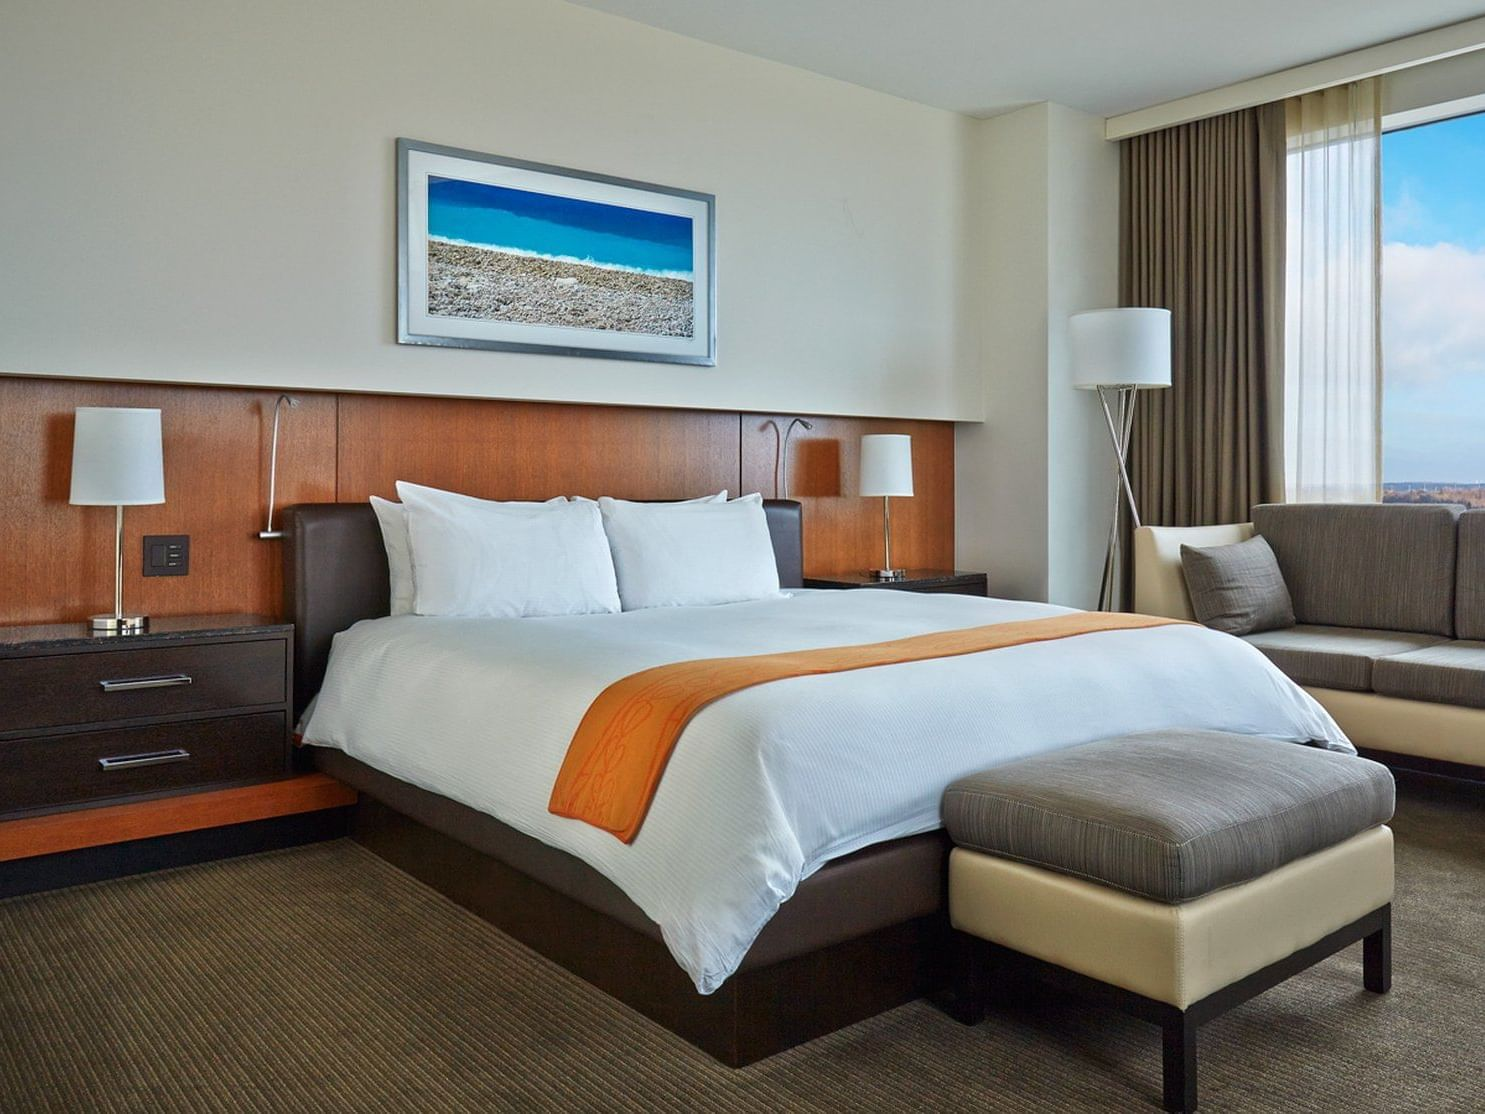 a bed in a hotel room